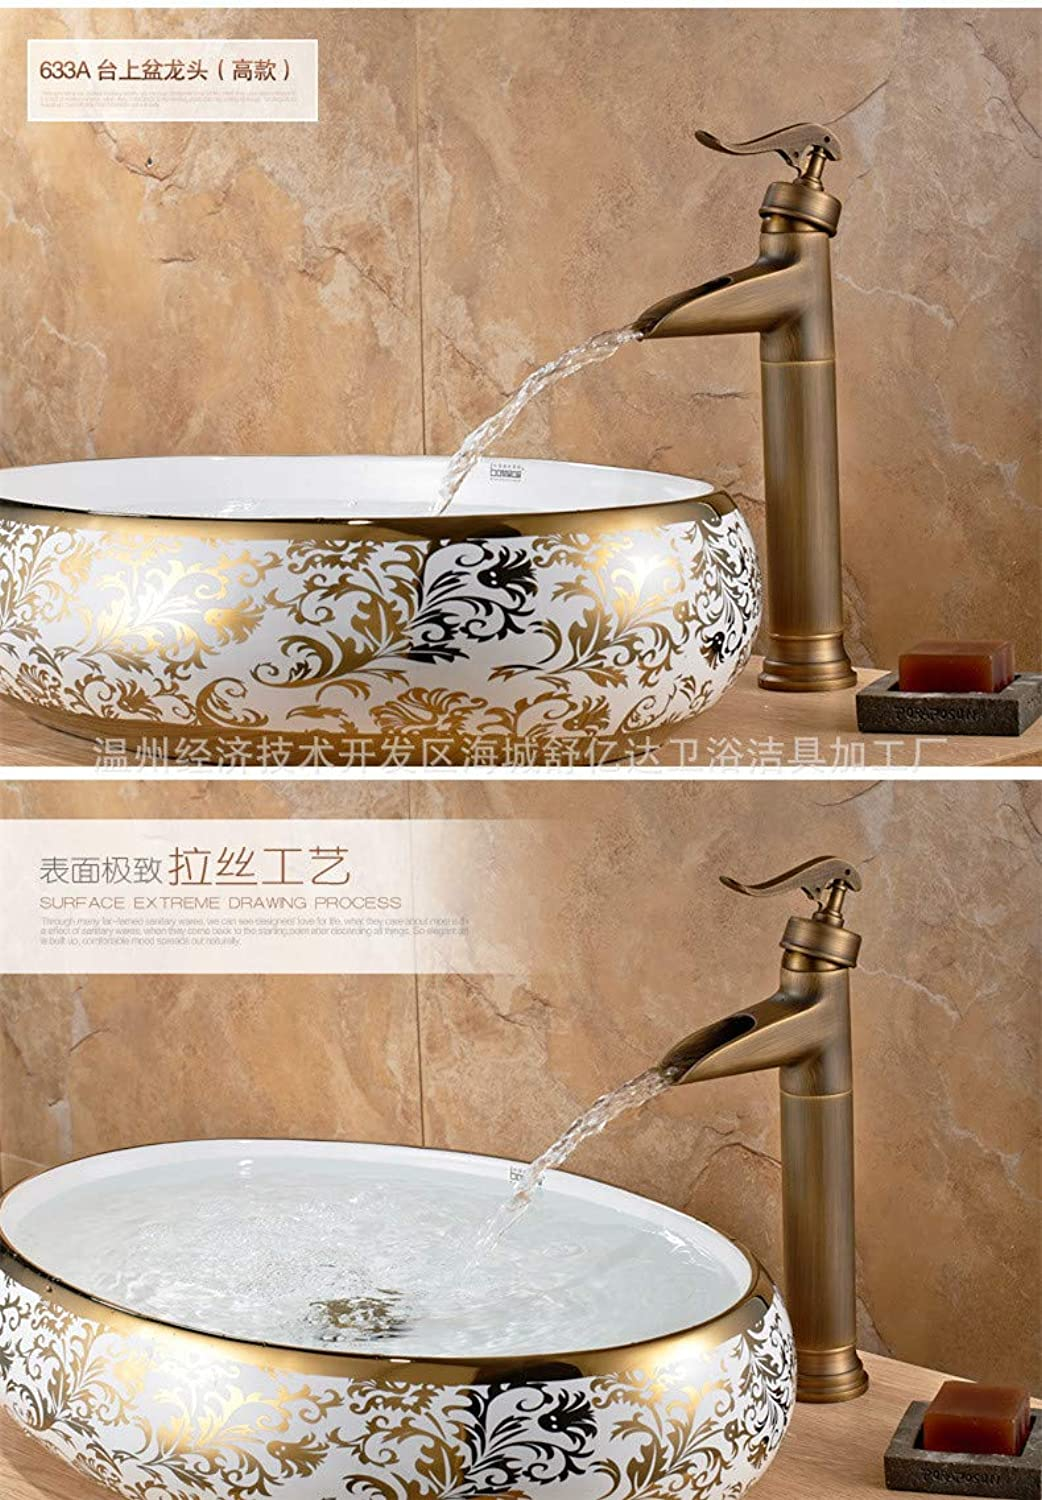 Antique Basin Faucet hot and Cold Water Retro Faucet Copper European Foreign Trade Above Counter Basin Faucet